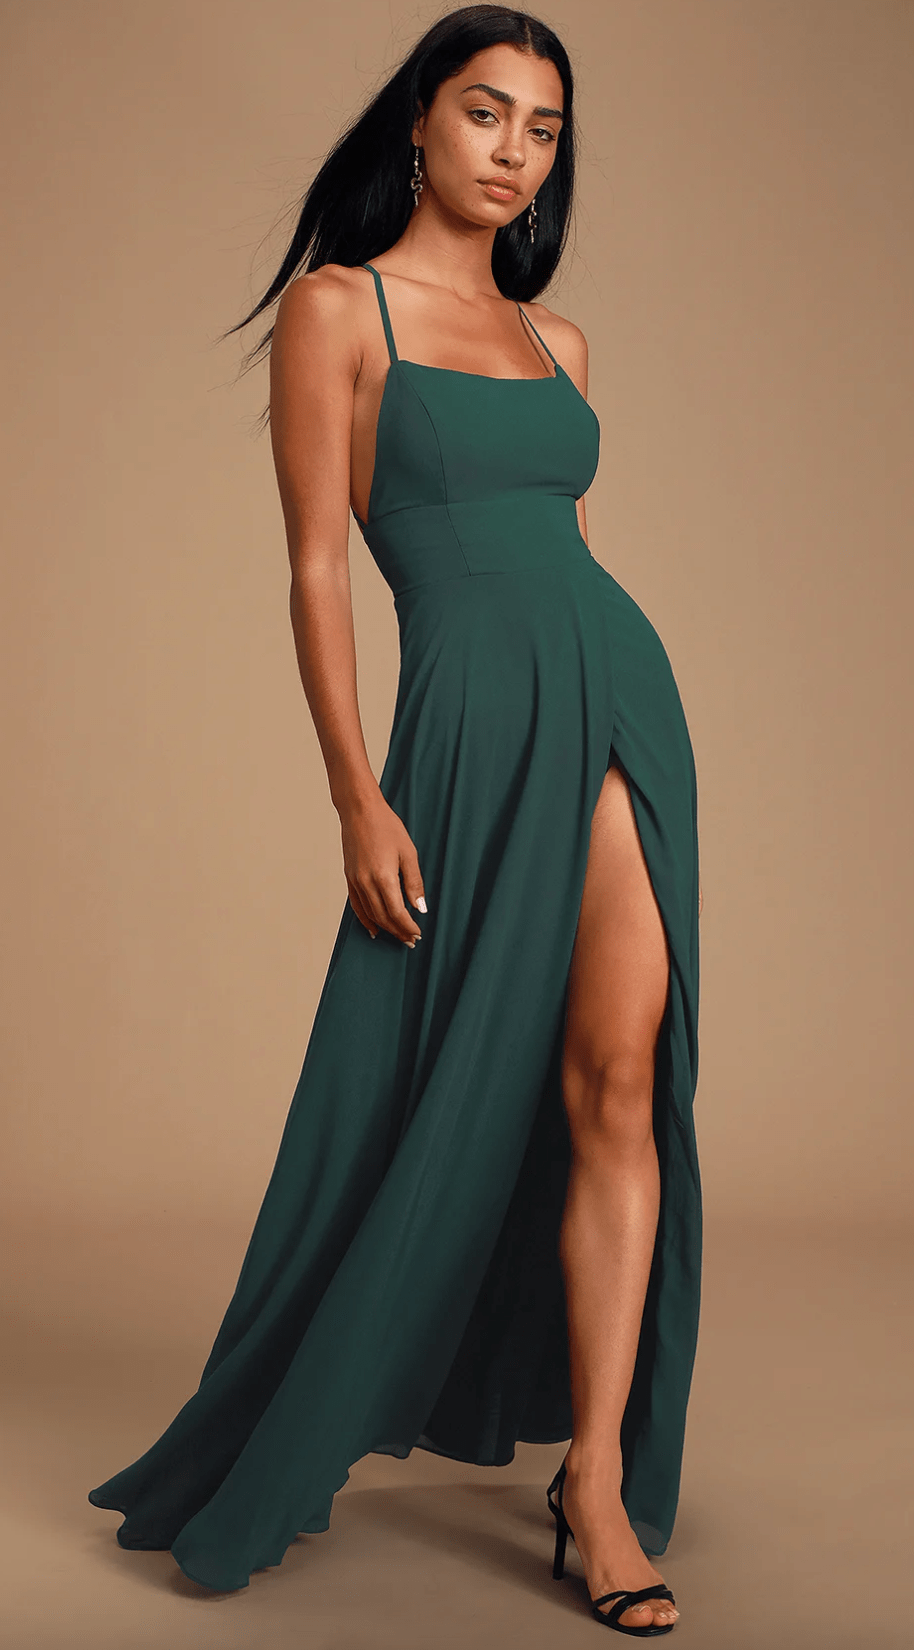 Forest green maxi dress from Lulu's